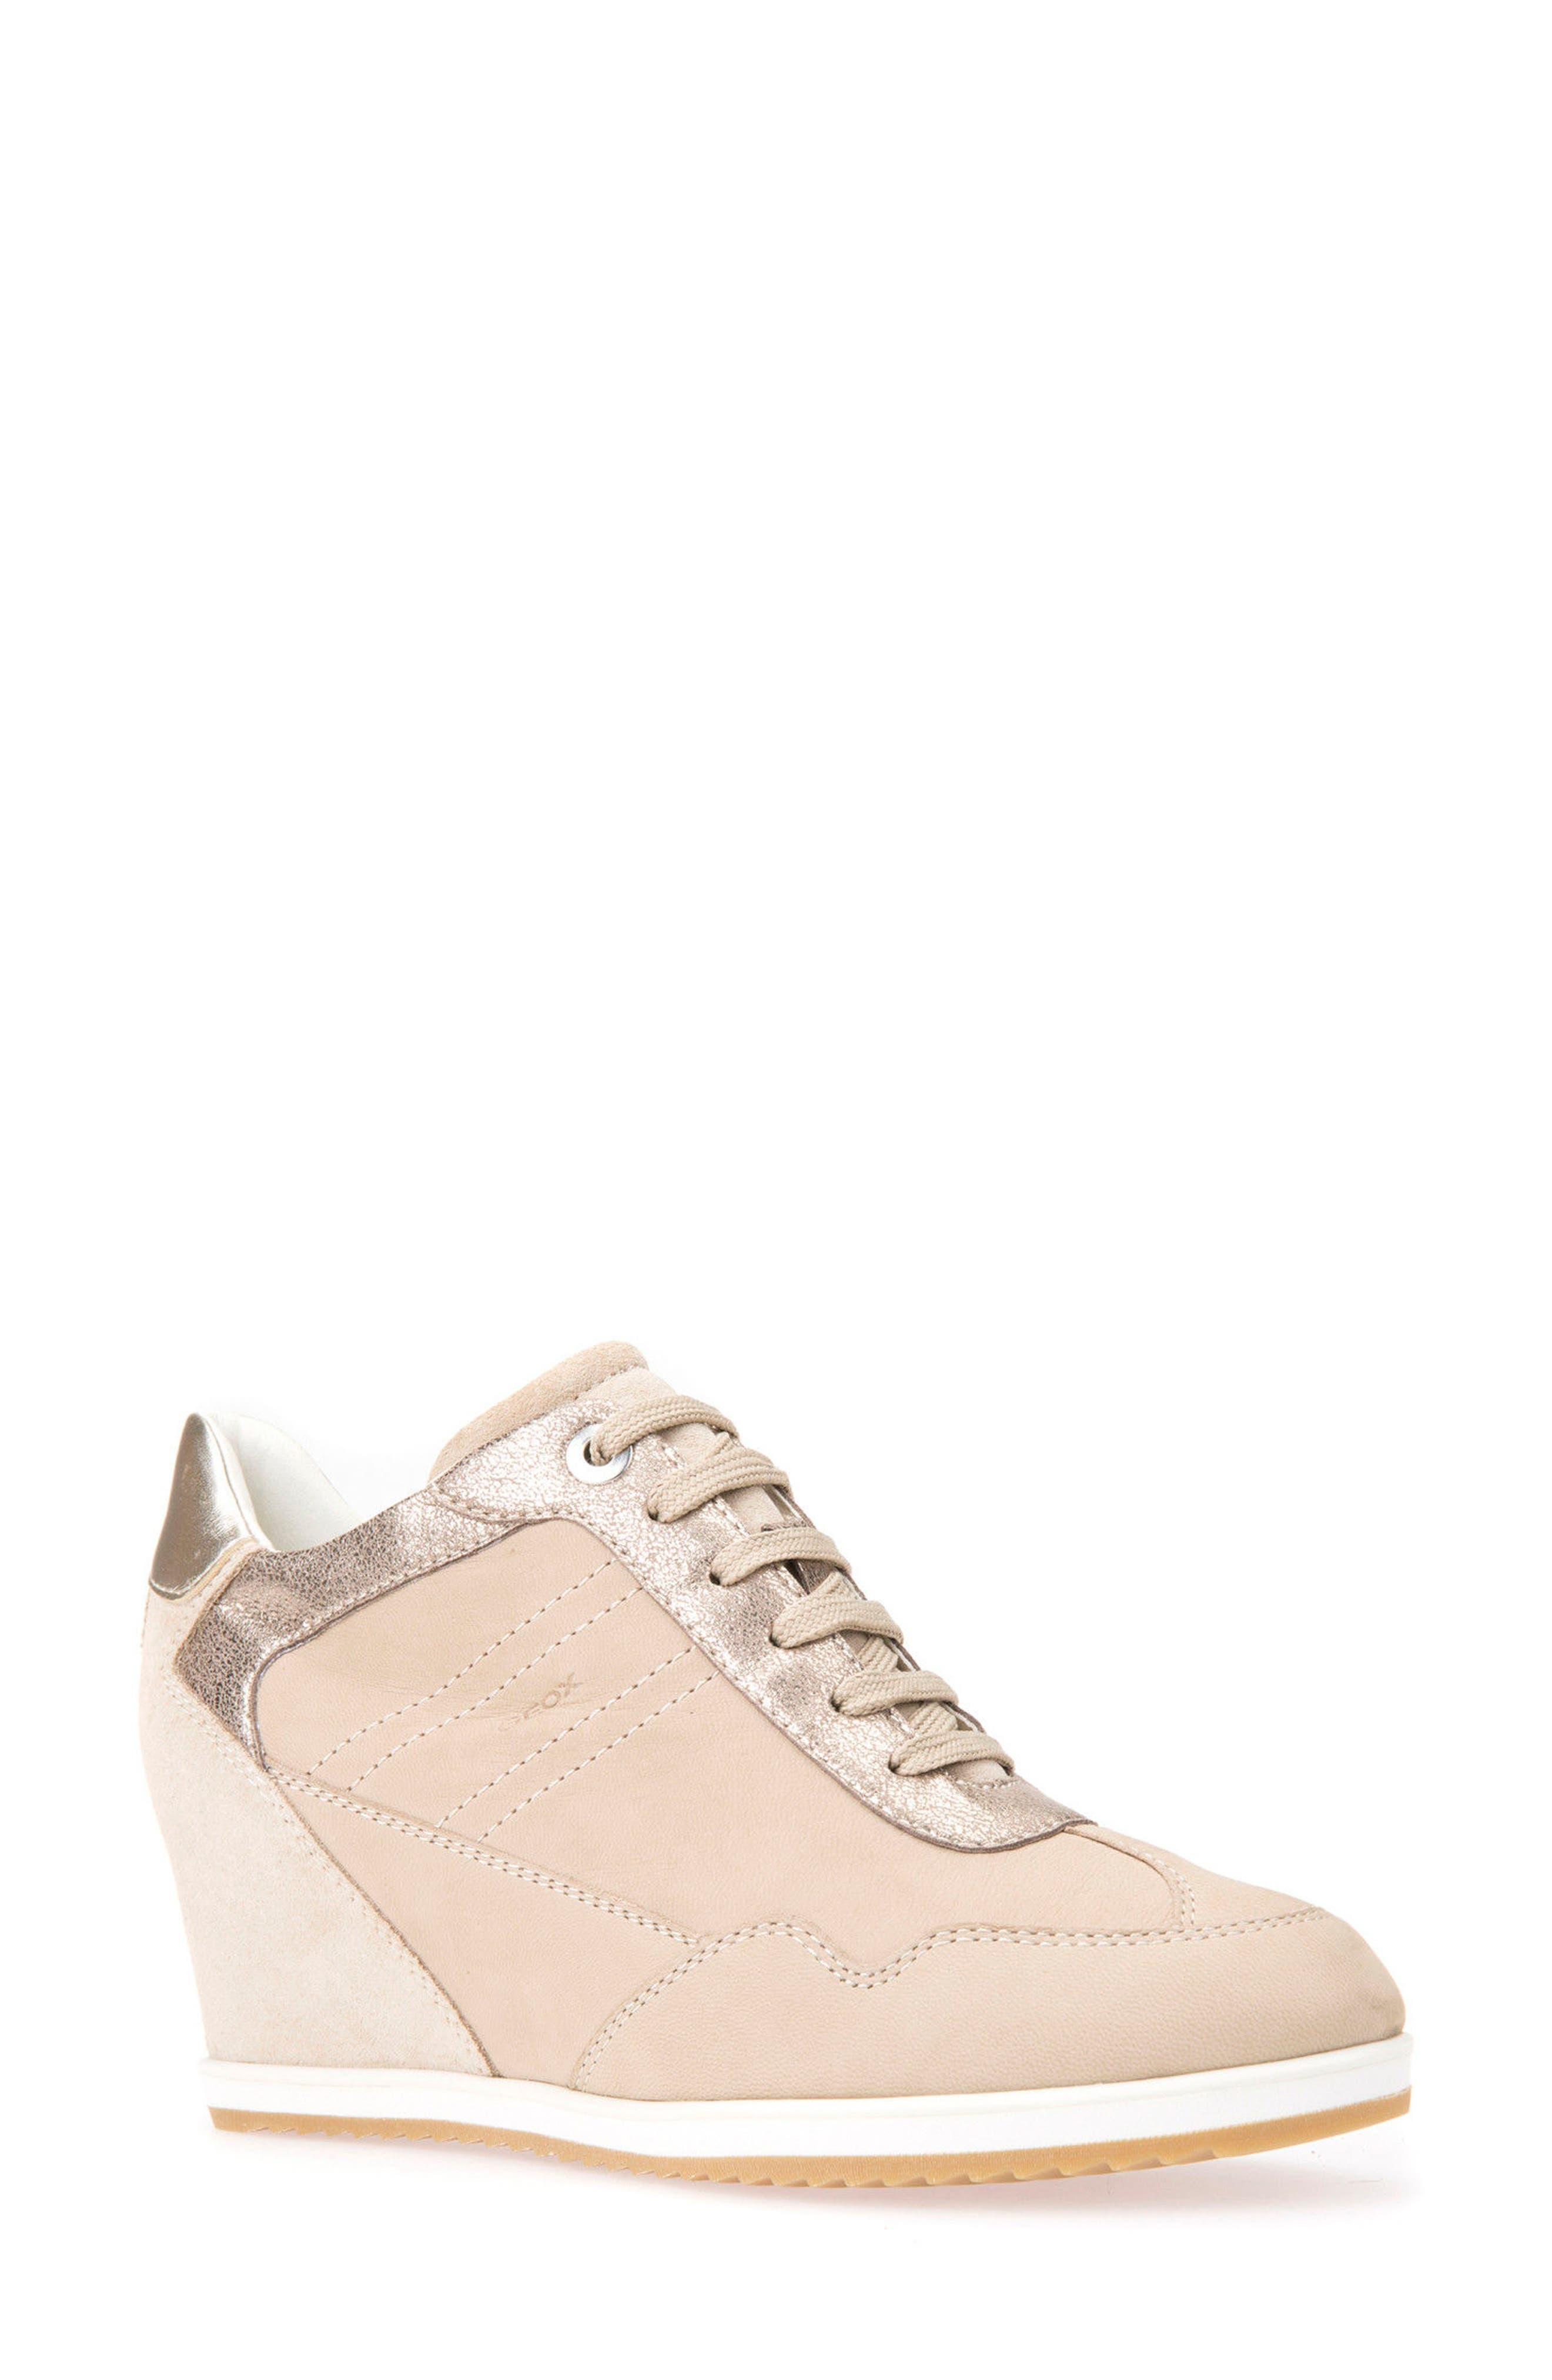 Illusion 34 Wedge Sneaker,                             Main thumbnail 1, color,                             SAND LEATHER